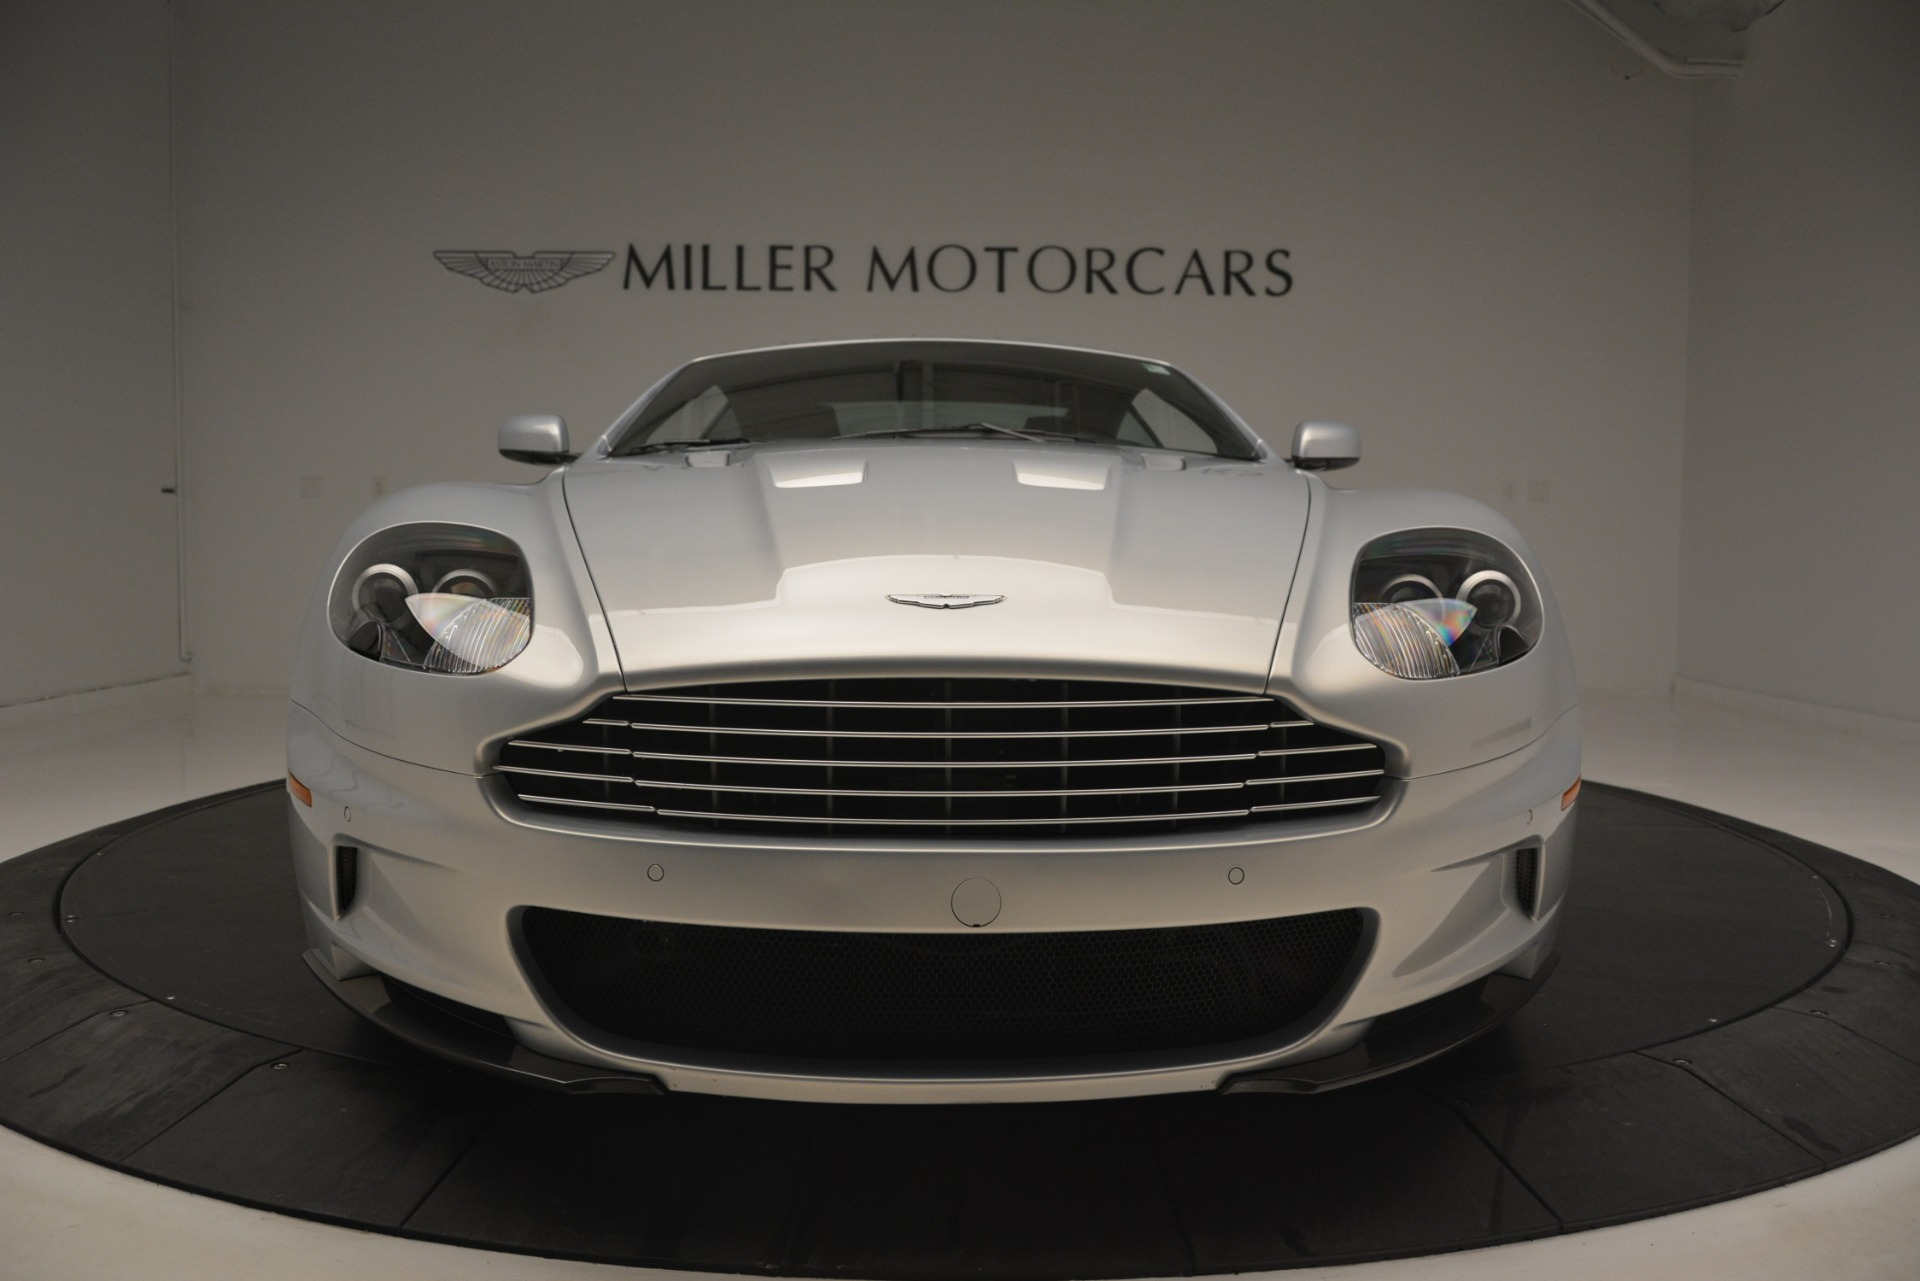 Used 2009 Aston Martin DBS Coupe For Sale In Westport, CT 3033_p13